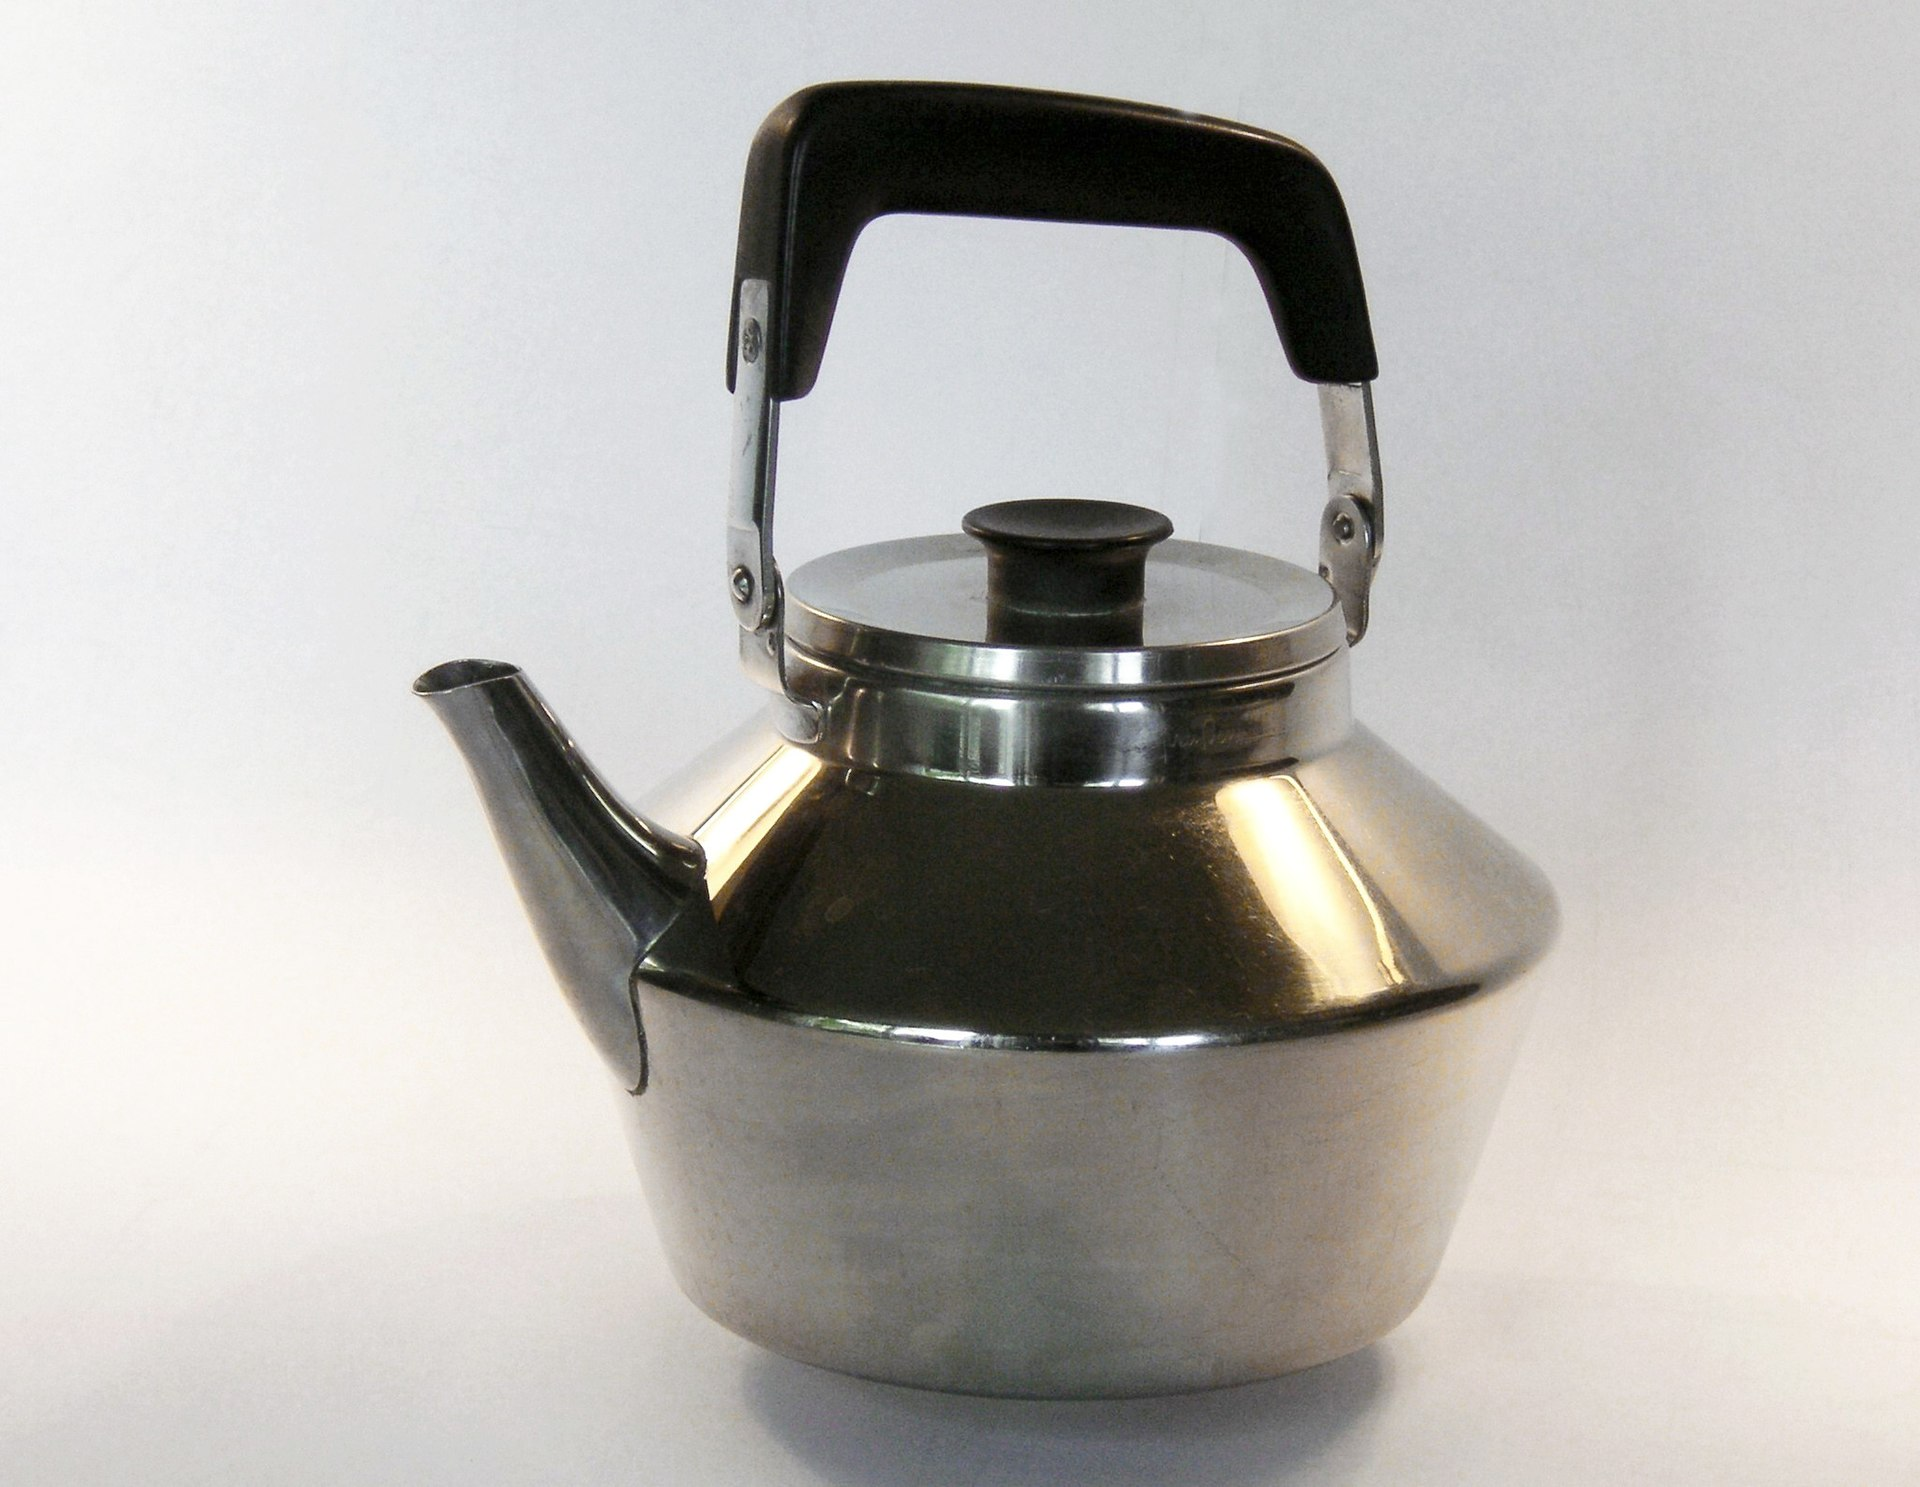 Cooking With A Kettle ~ Kettle wikipedia